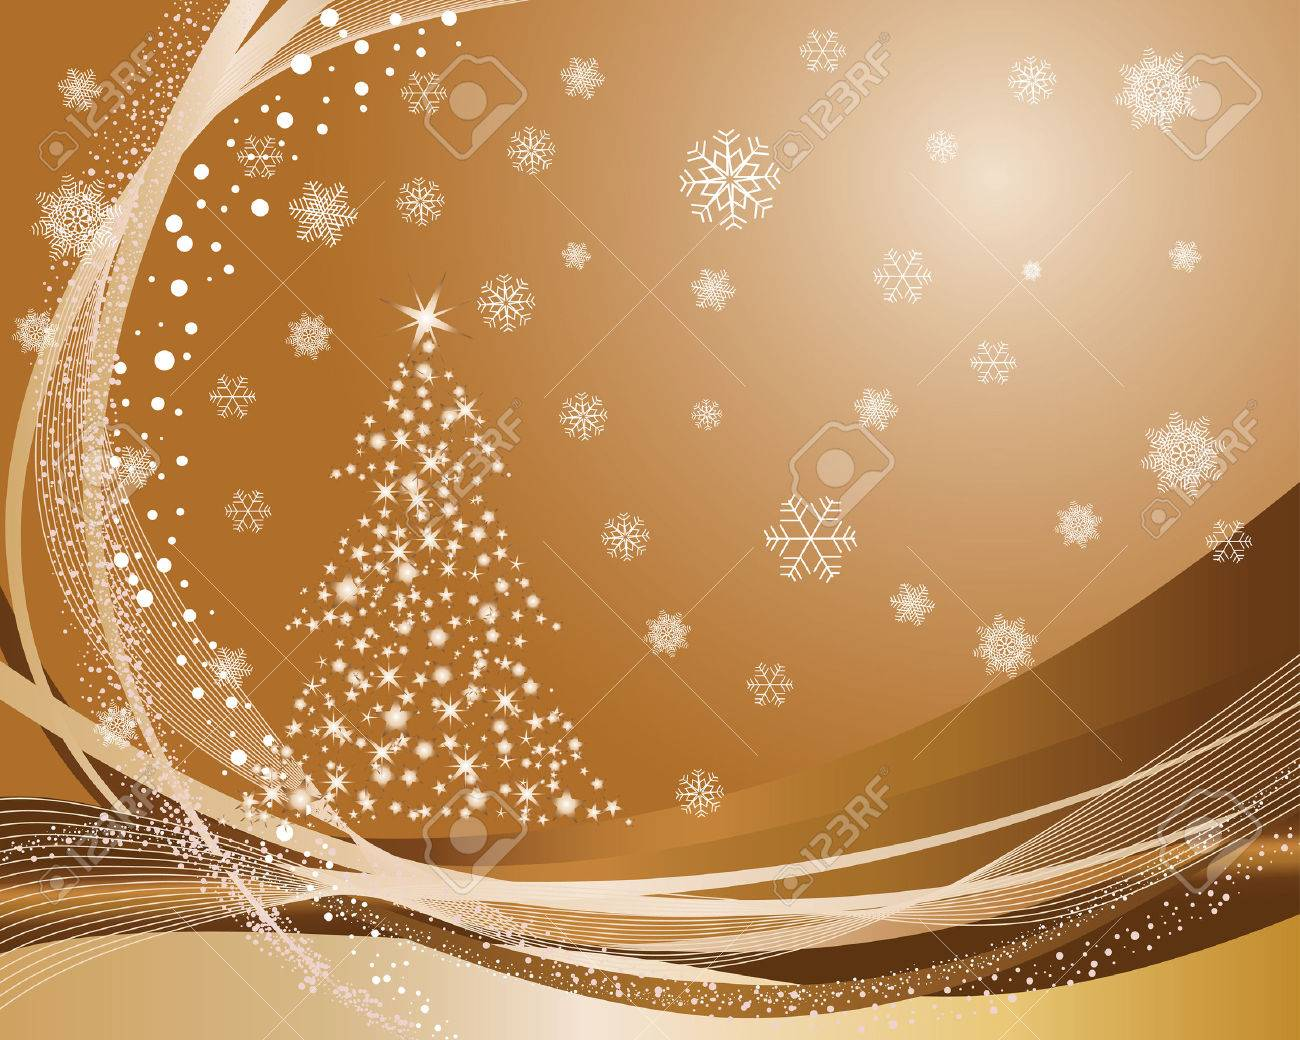 Beautiful vector christmas new year background for design use - Beautiful Vector Christmas New Year Background For Design Use Stock Vector 5634765